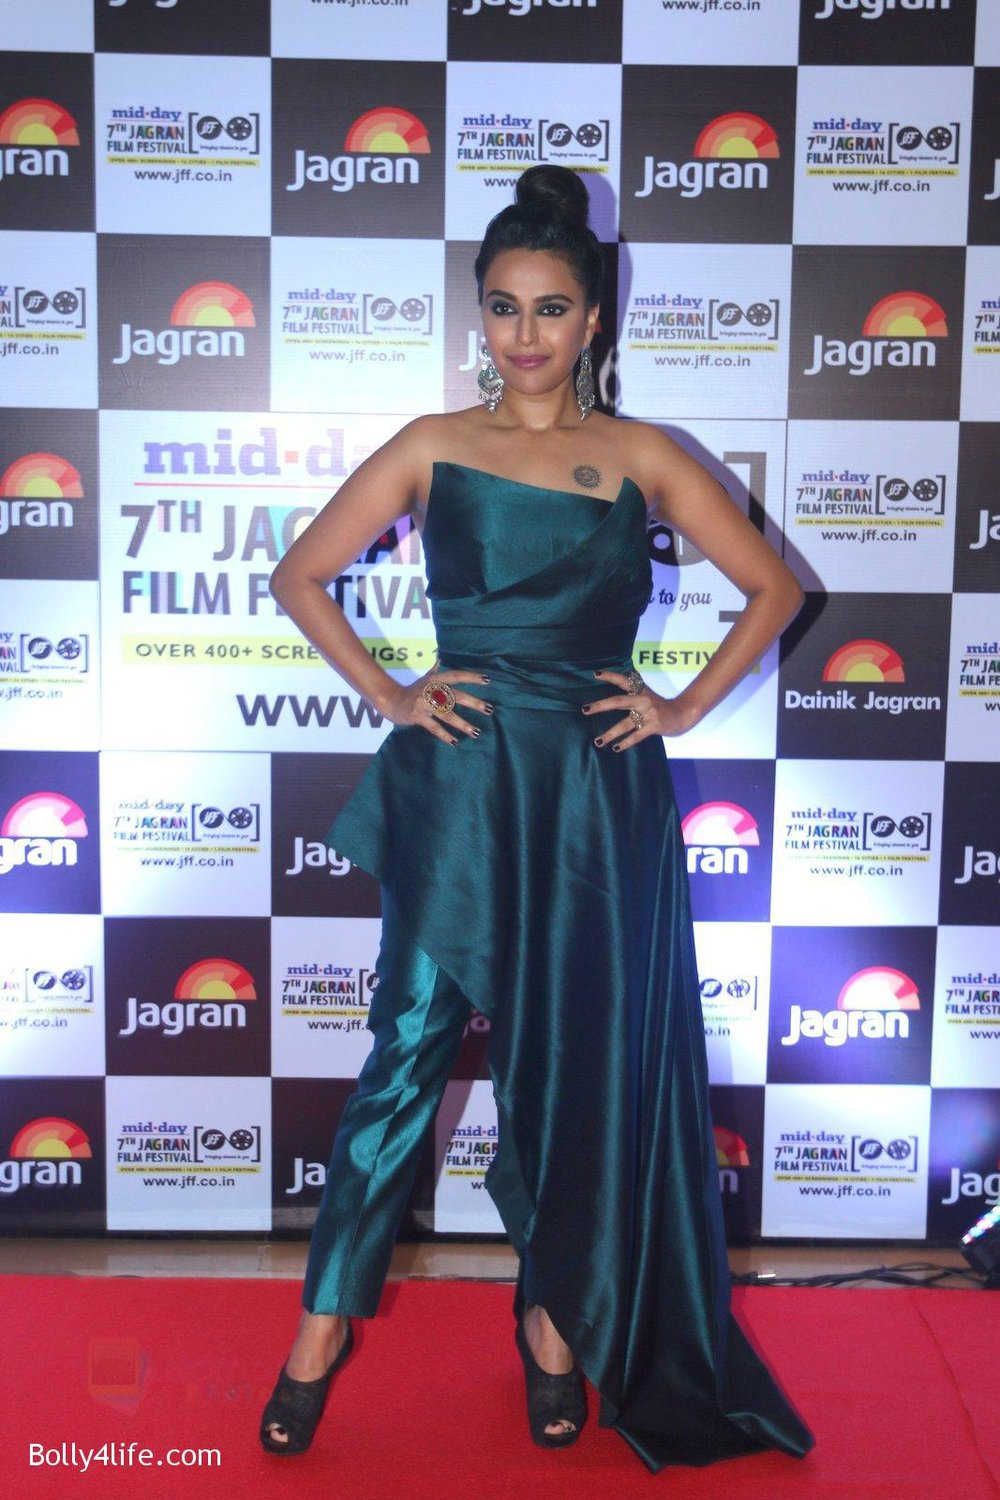 Swara-Bhaskar-at-Jagran-Film-fest-awards-on-30th-Sept-2016-74.jpg